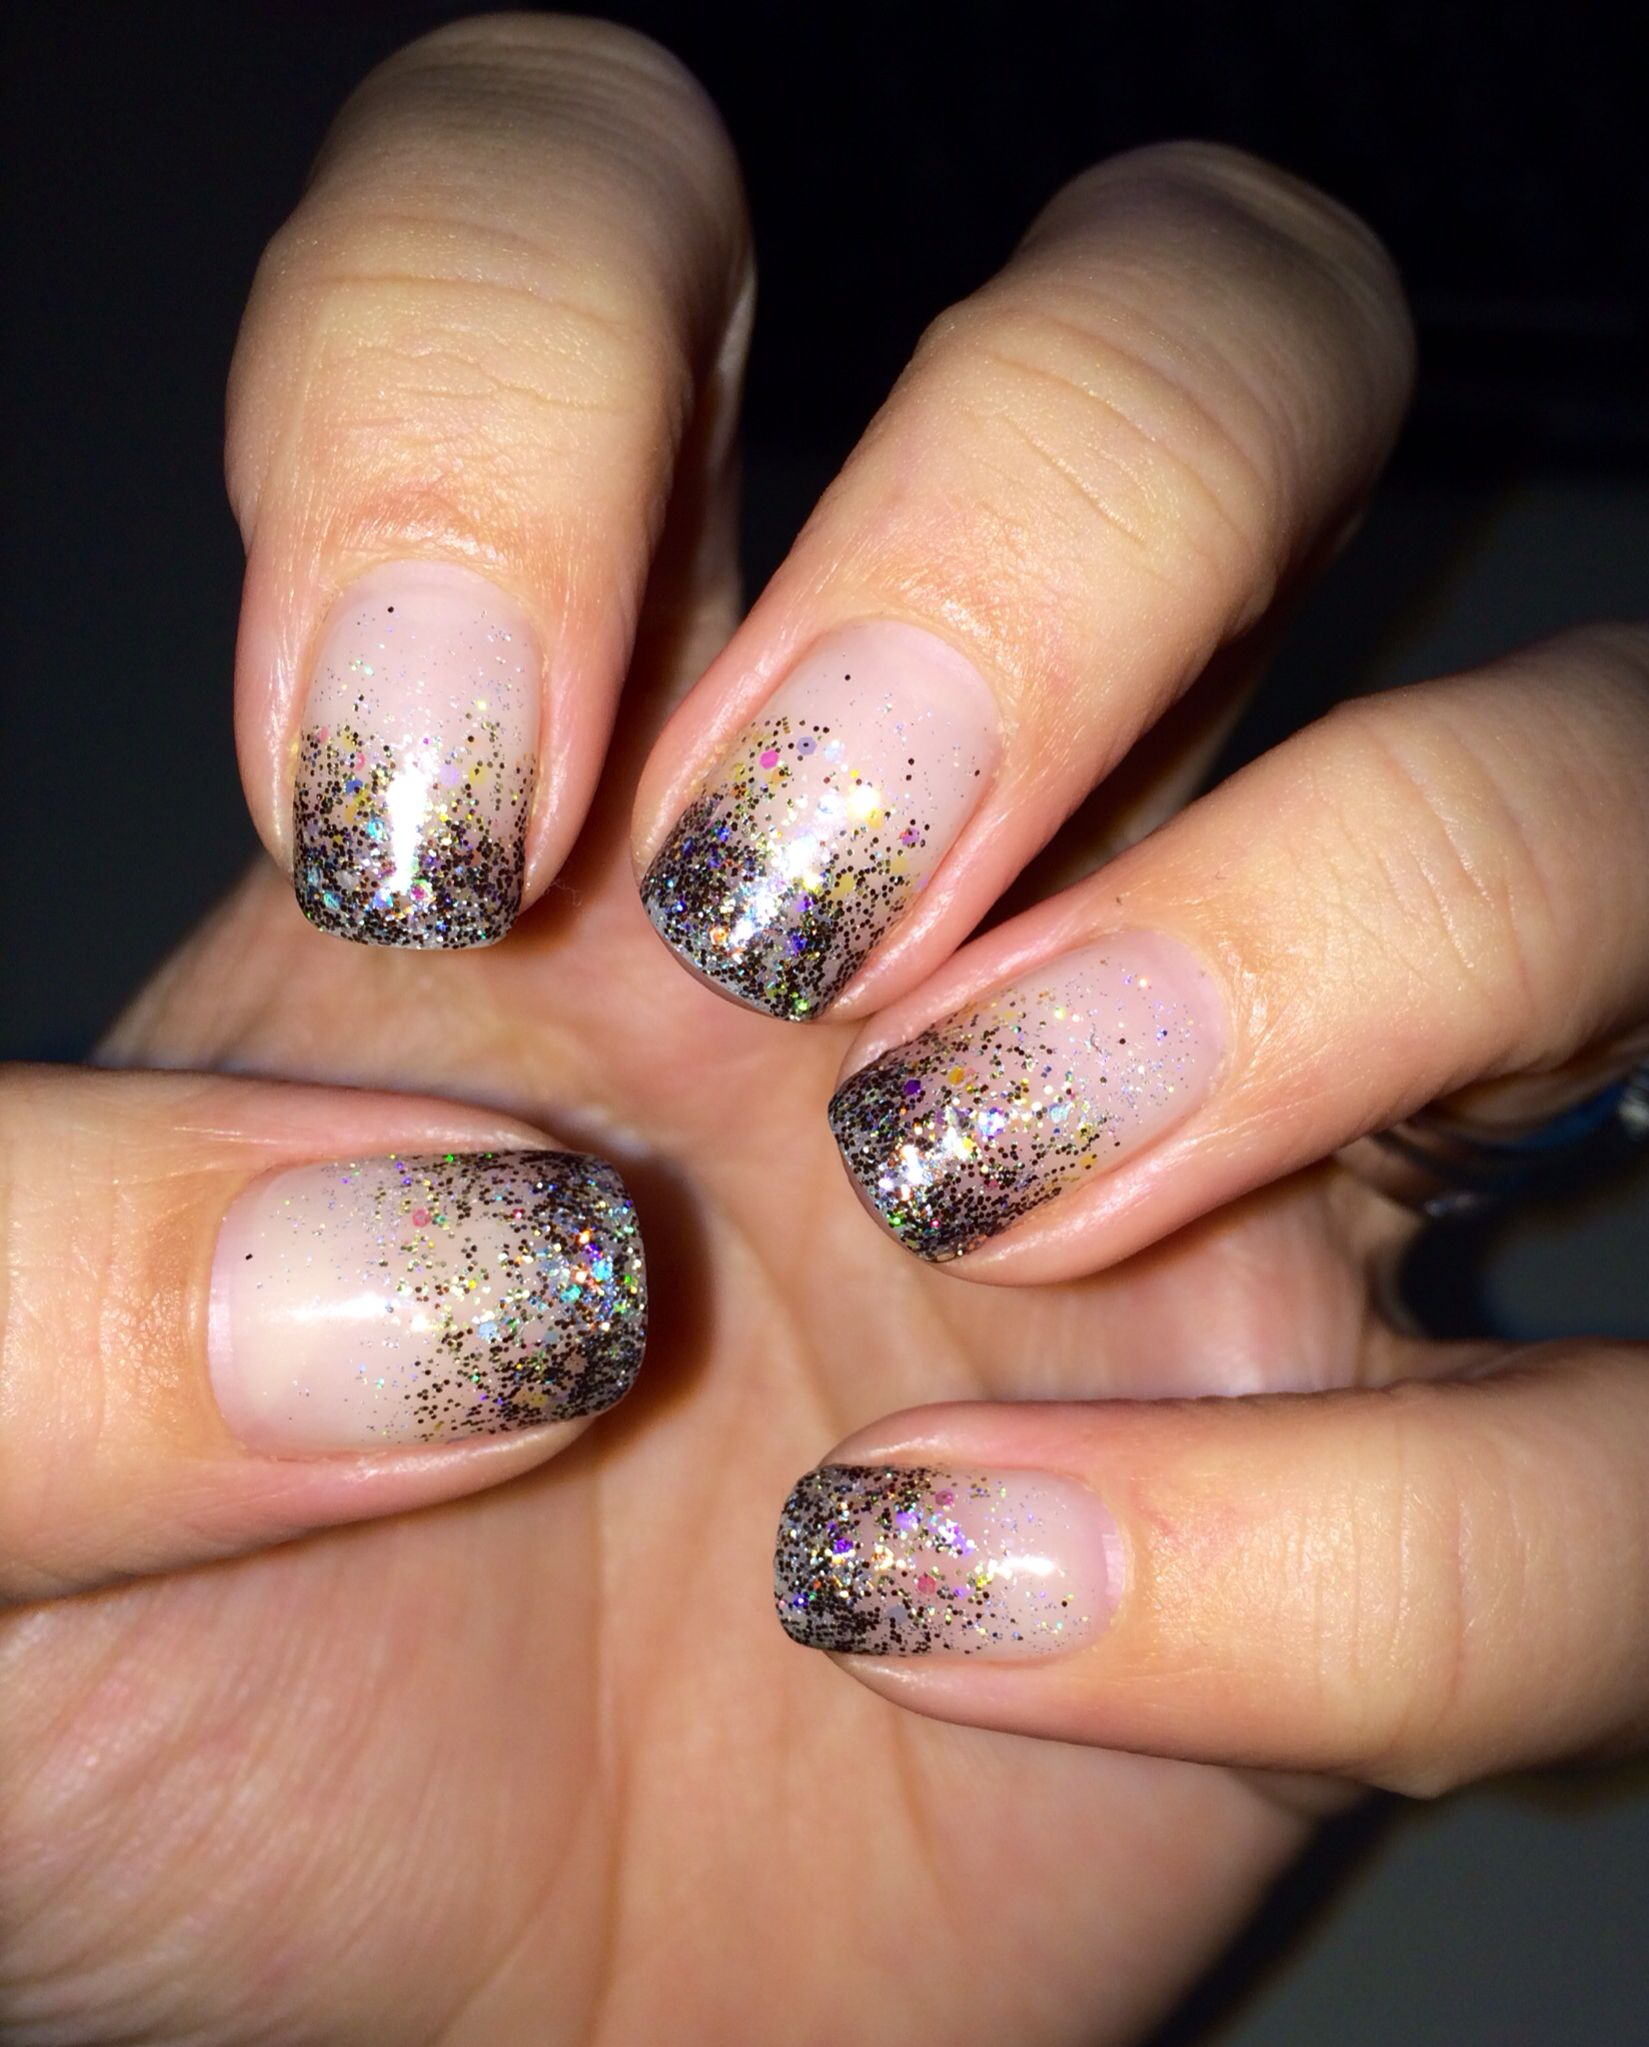 Gel nails. New Years gel nail design. Sparkles, glittery fun. | My ...